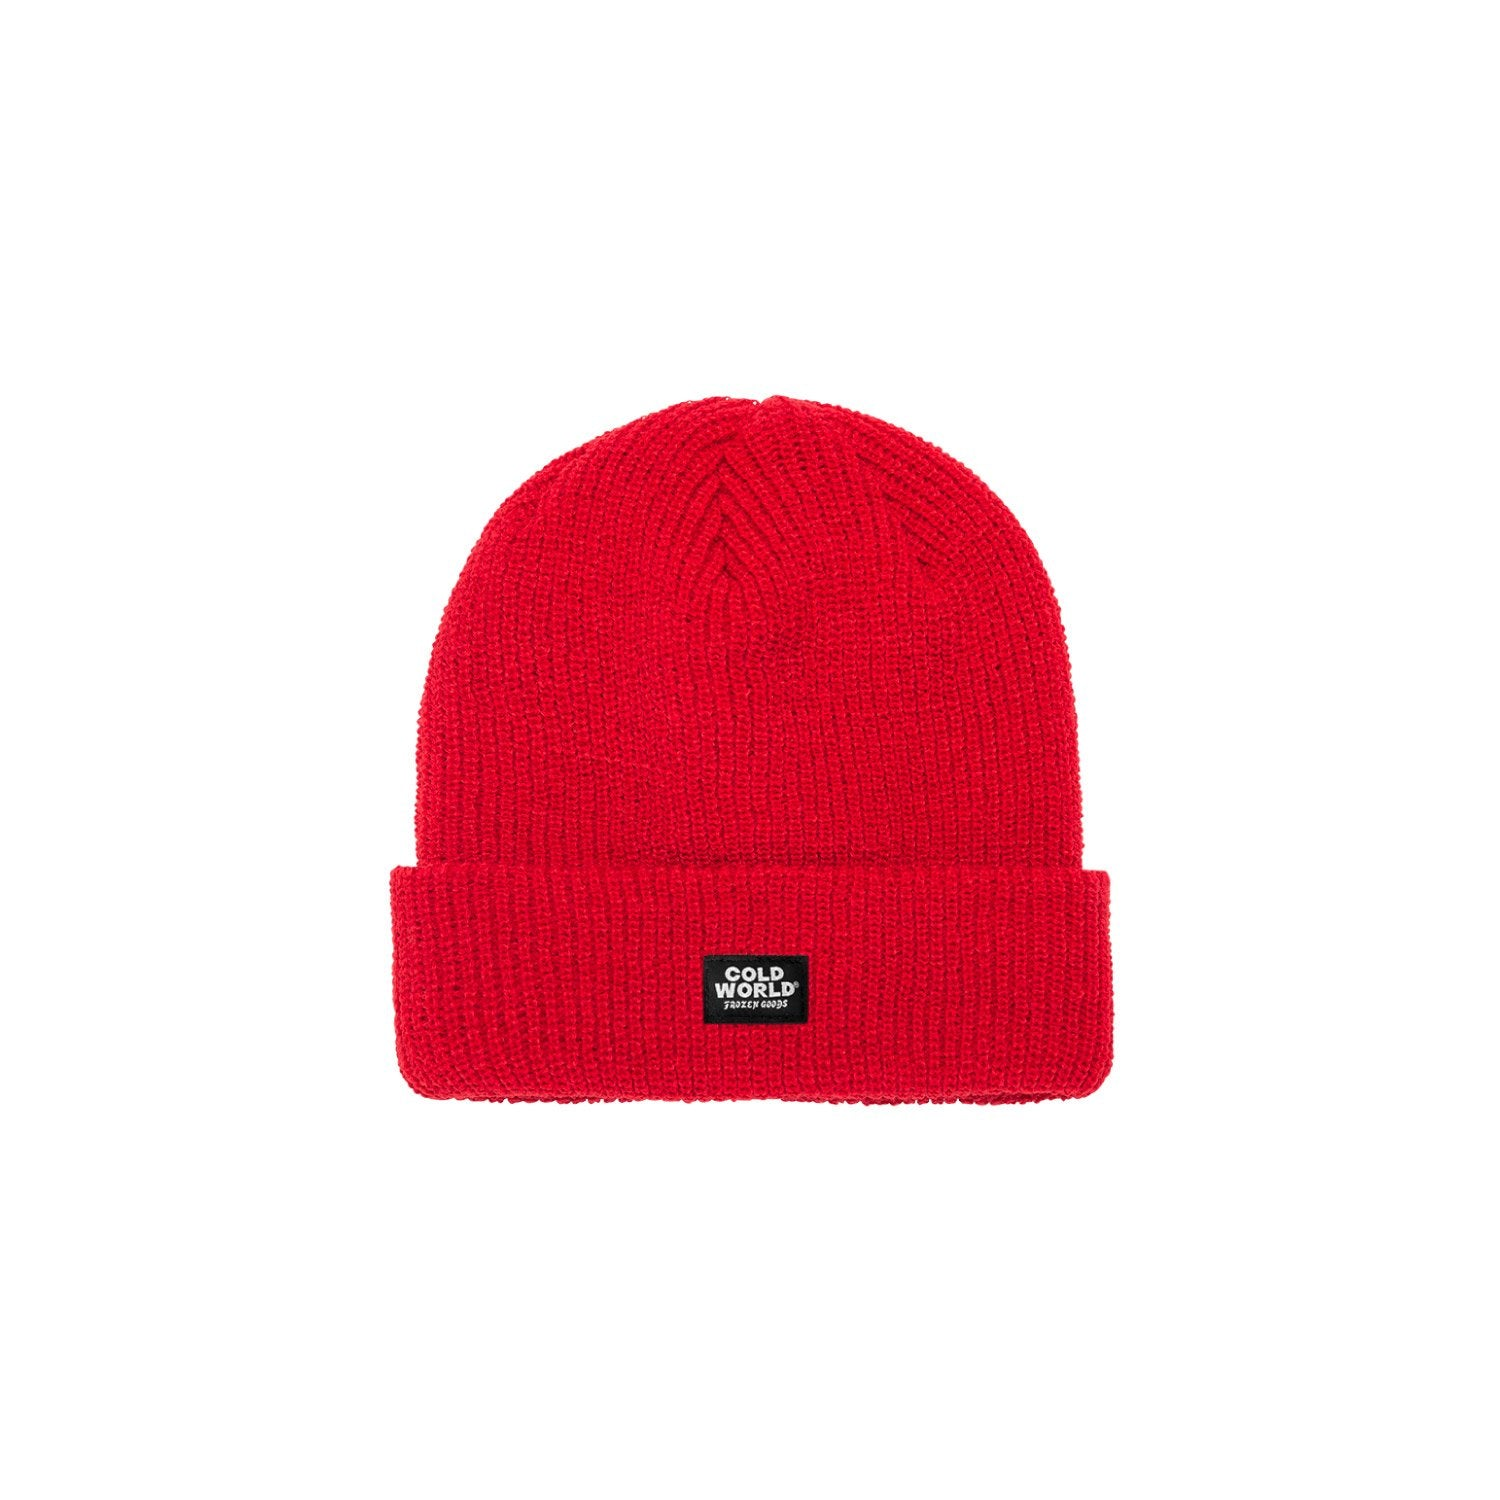 COLD WORLD TOQUES COLD WORLD KNIT BEANIE